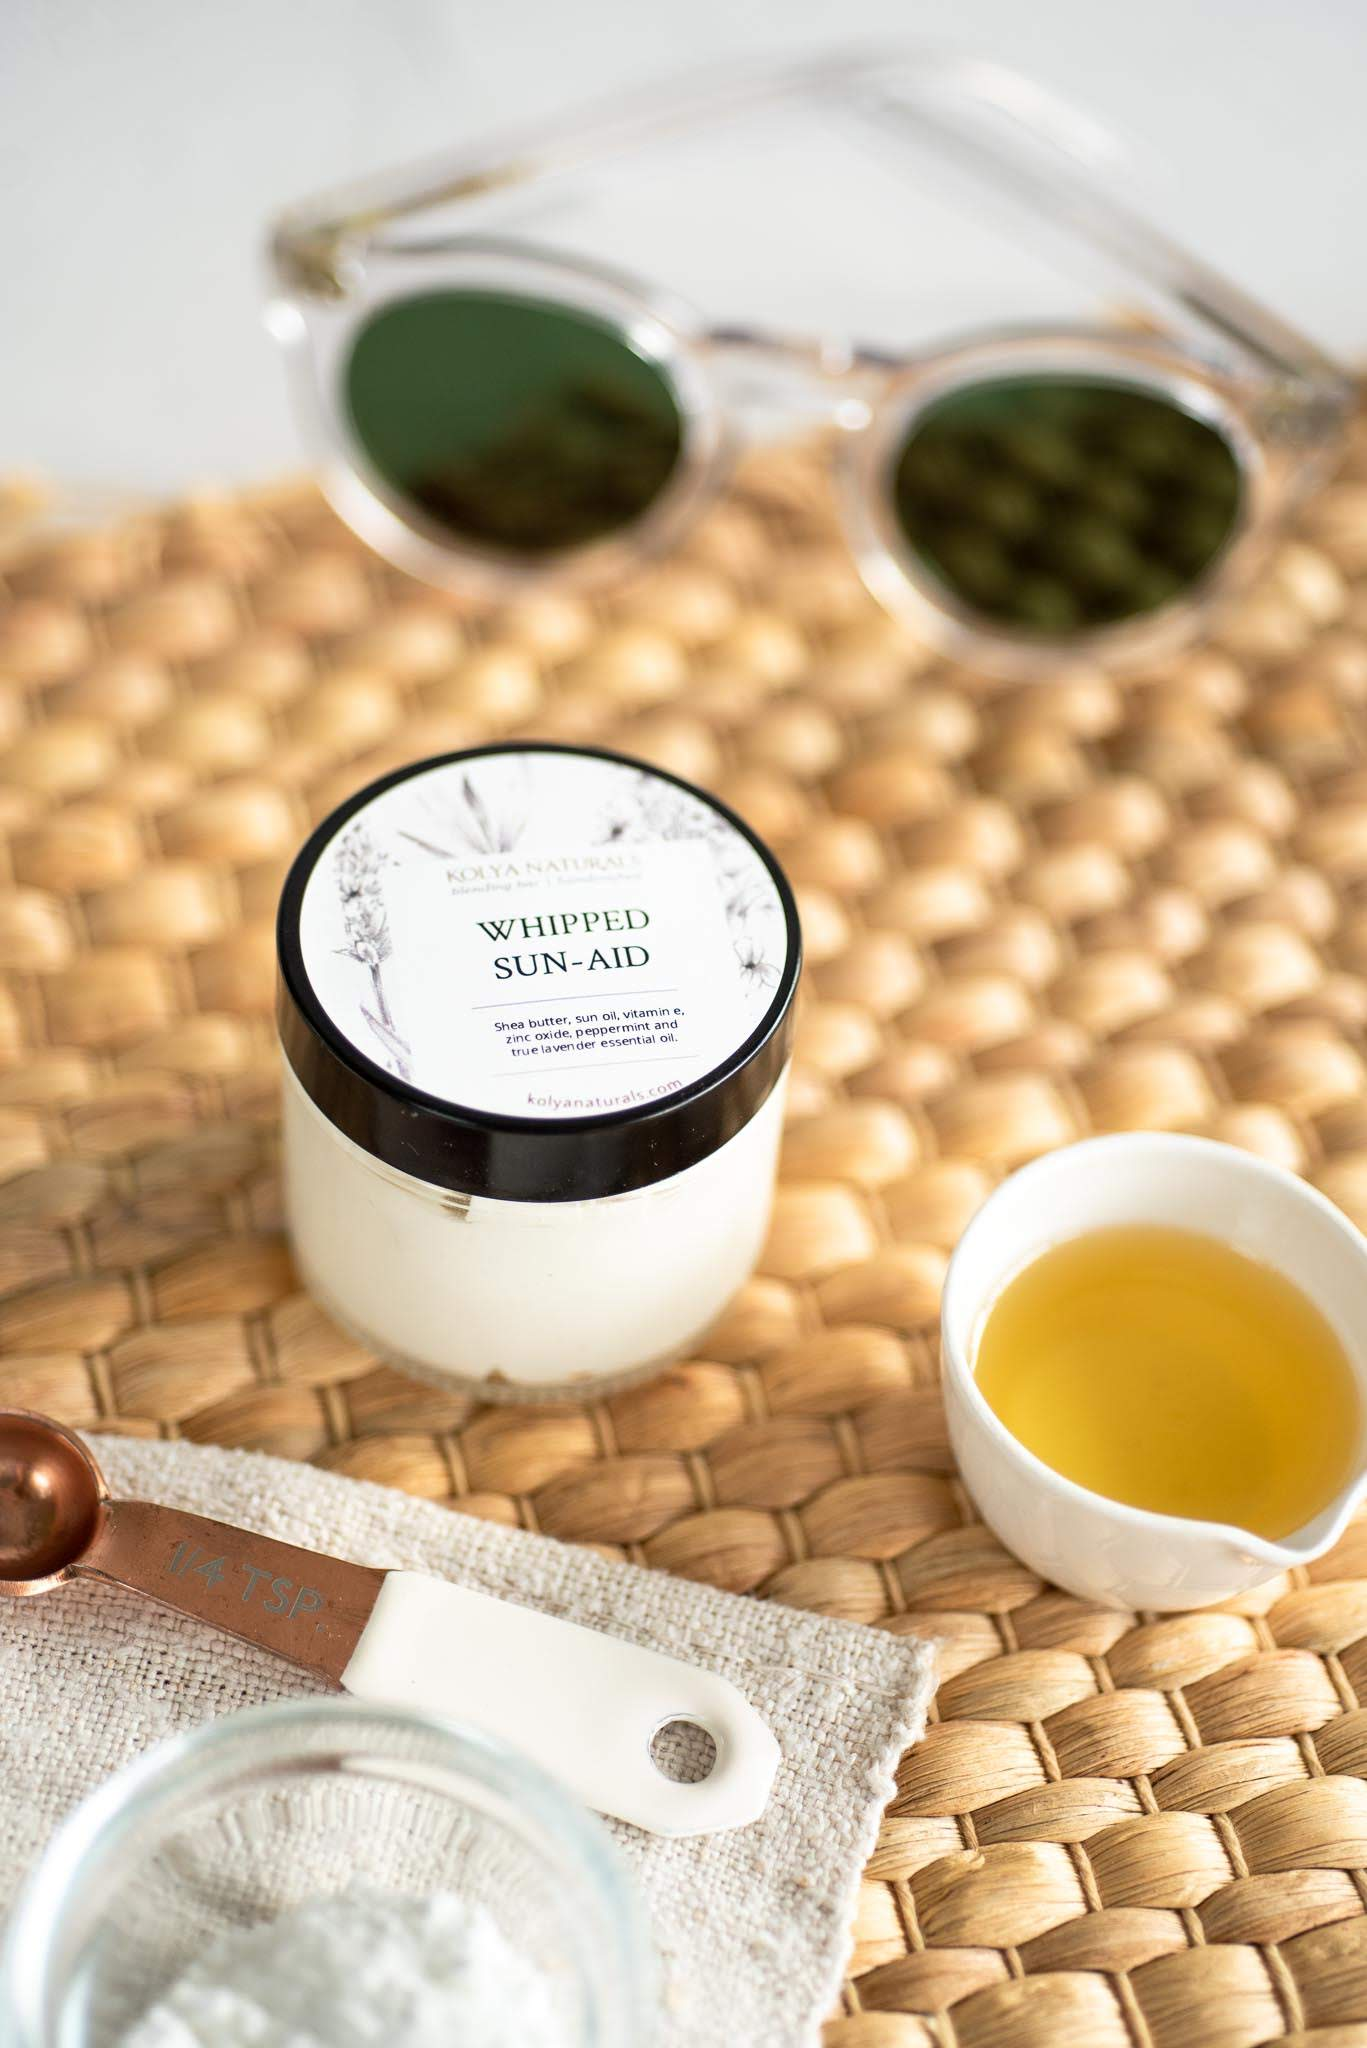 Whipped Sun Aid for Protection against the Elements | Kolya Naturals, Canada